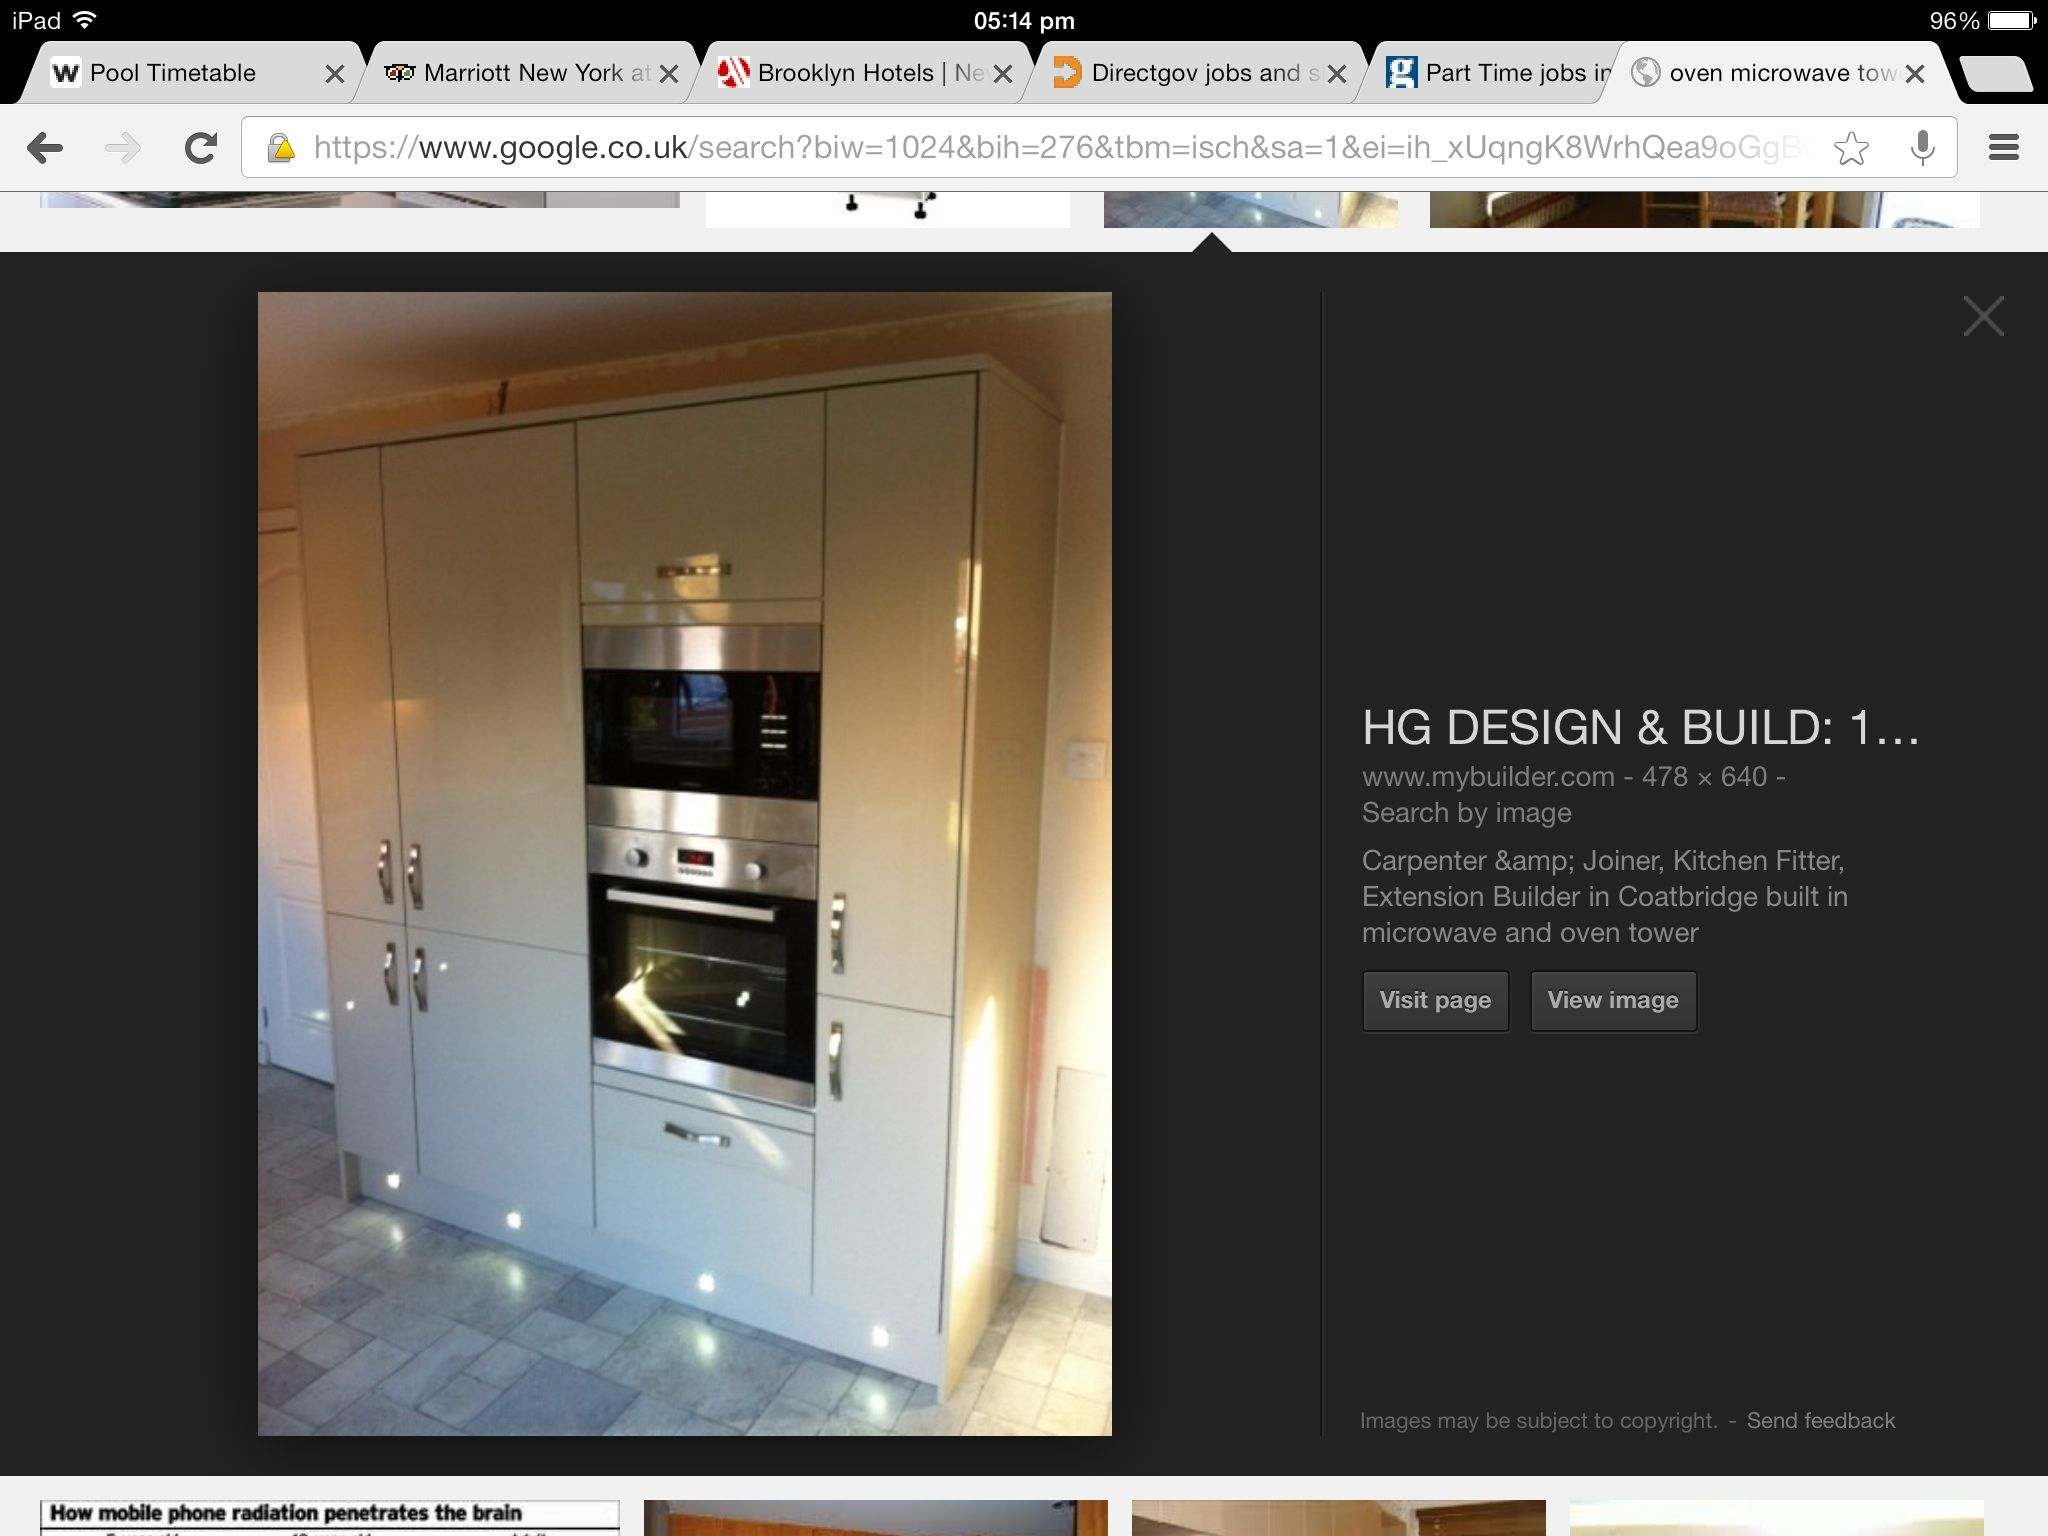 Oven Microwave Tower Kitchen Fitters Lighted Bathroom Mirror Building Design